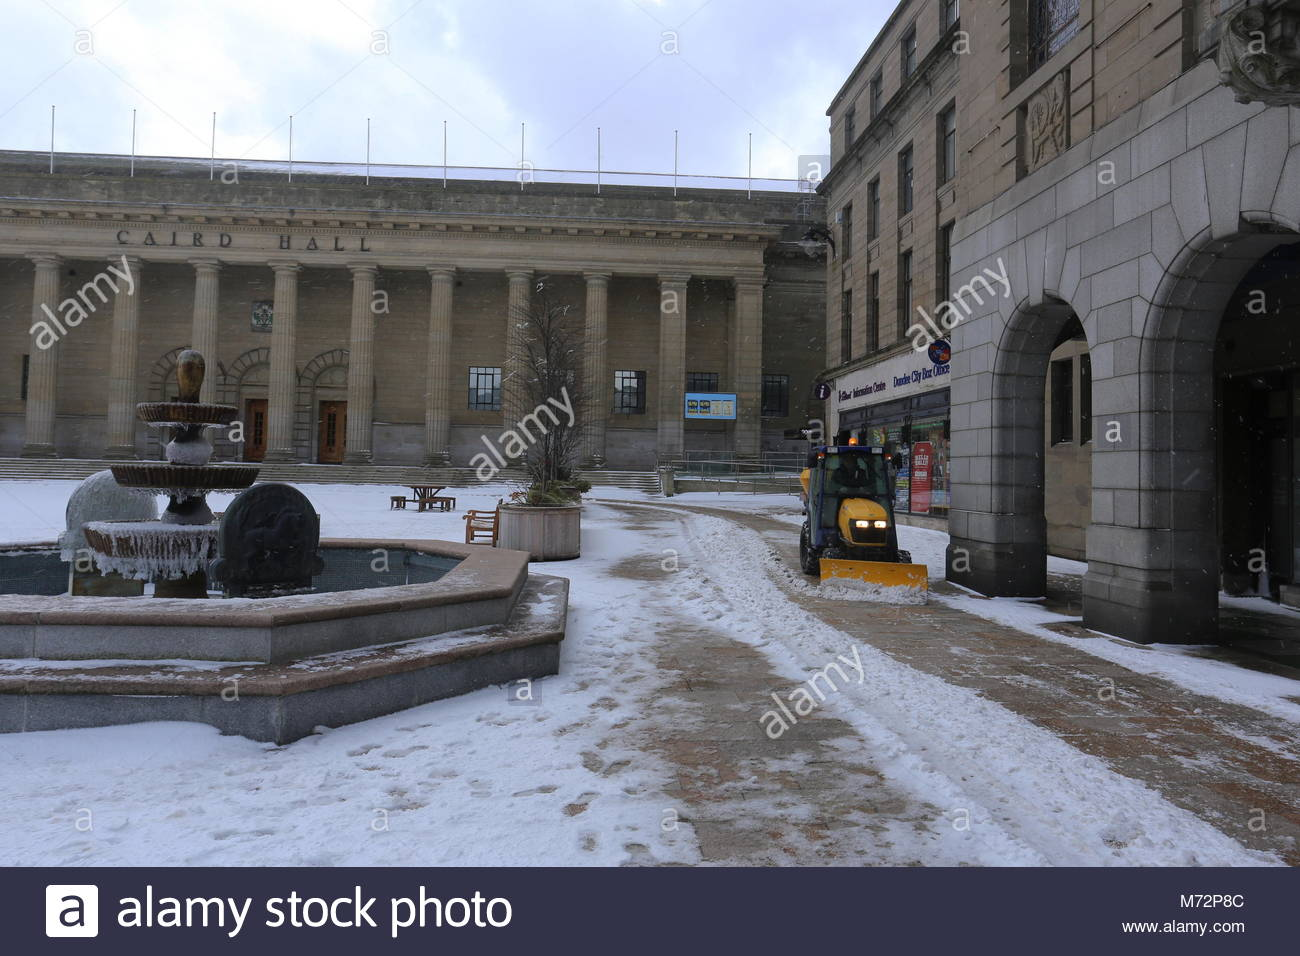 Frozen fountains and Caird Hall City Square Dundee Scotland  March 2018 - Stock Image